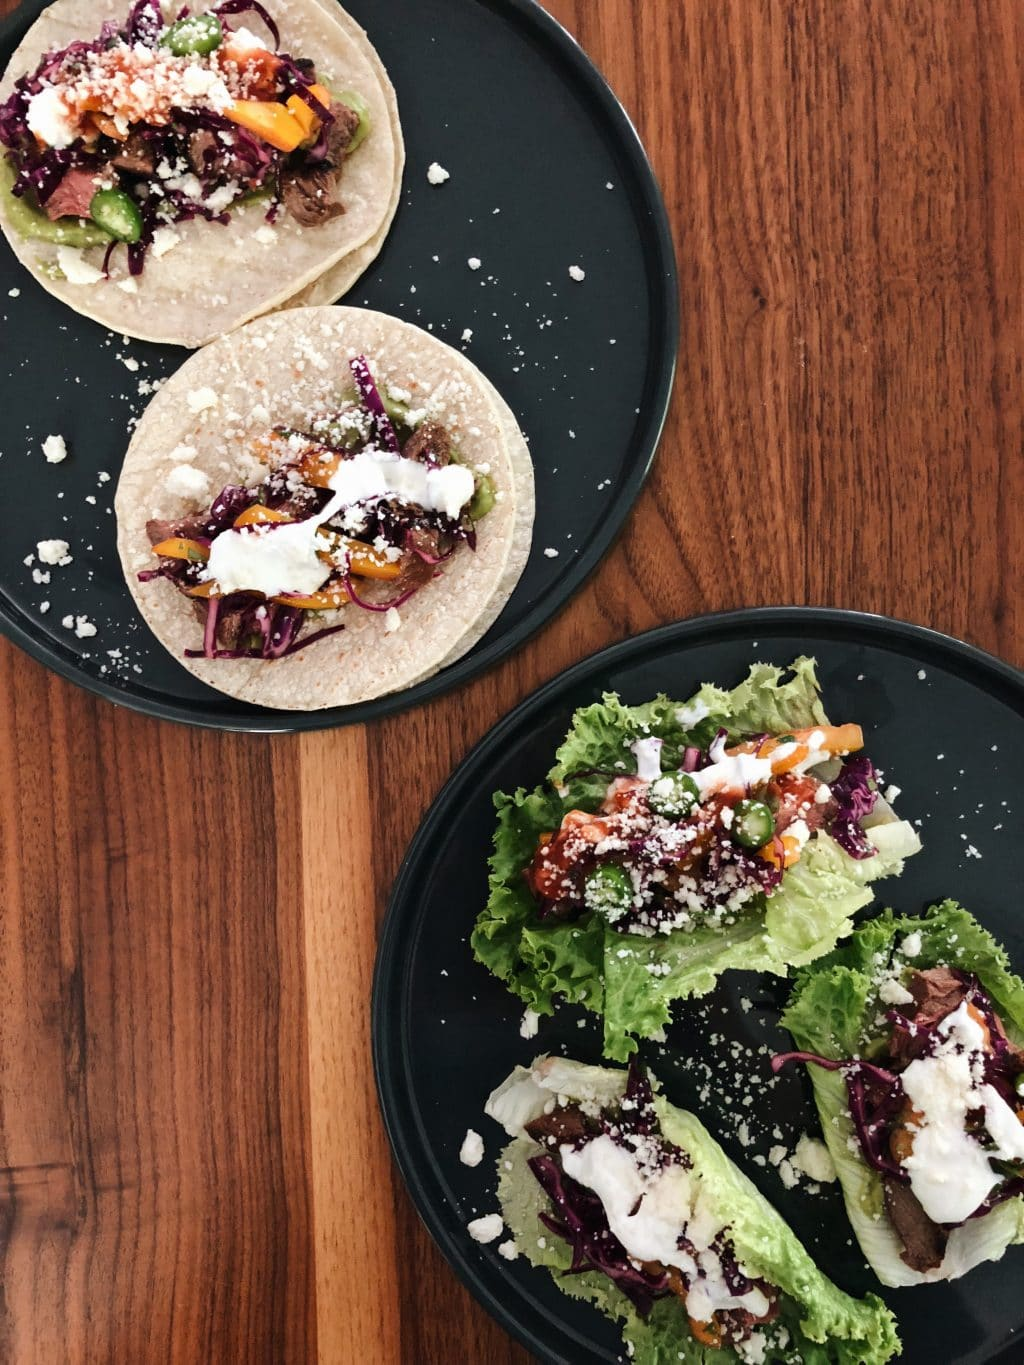 Tacos with grilled steak and purple cabbage slaw